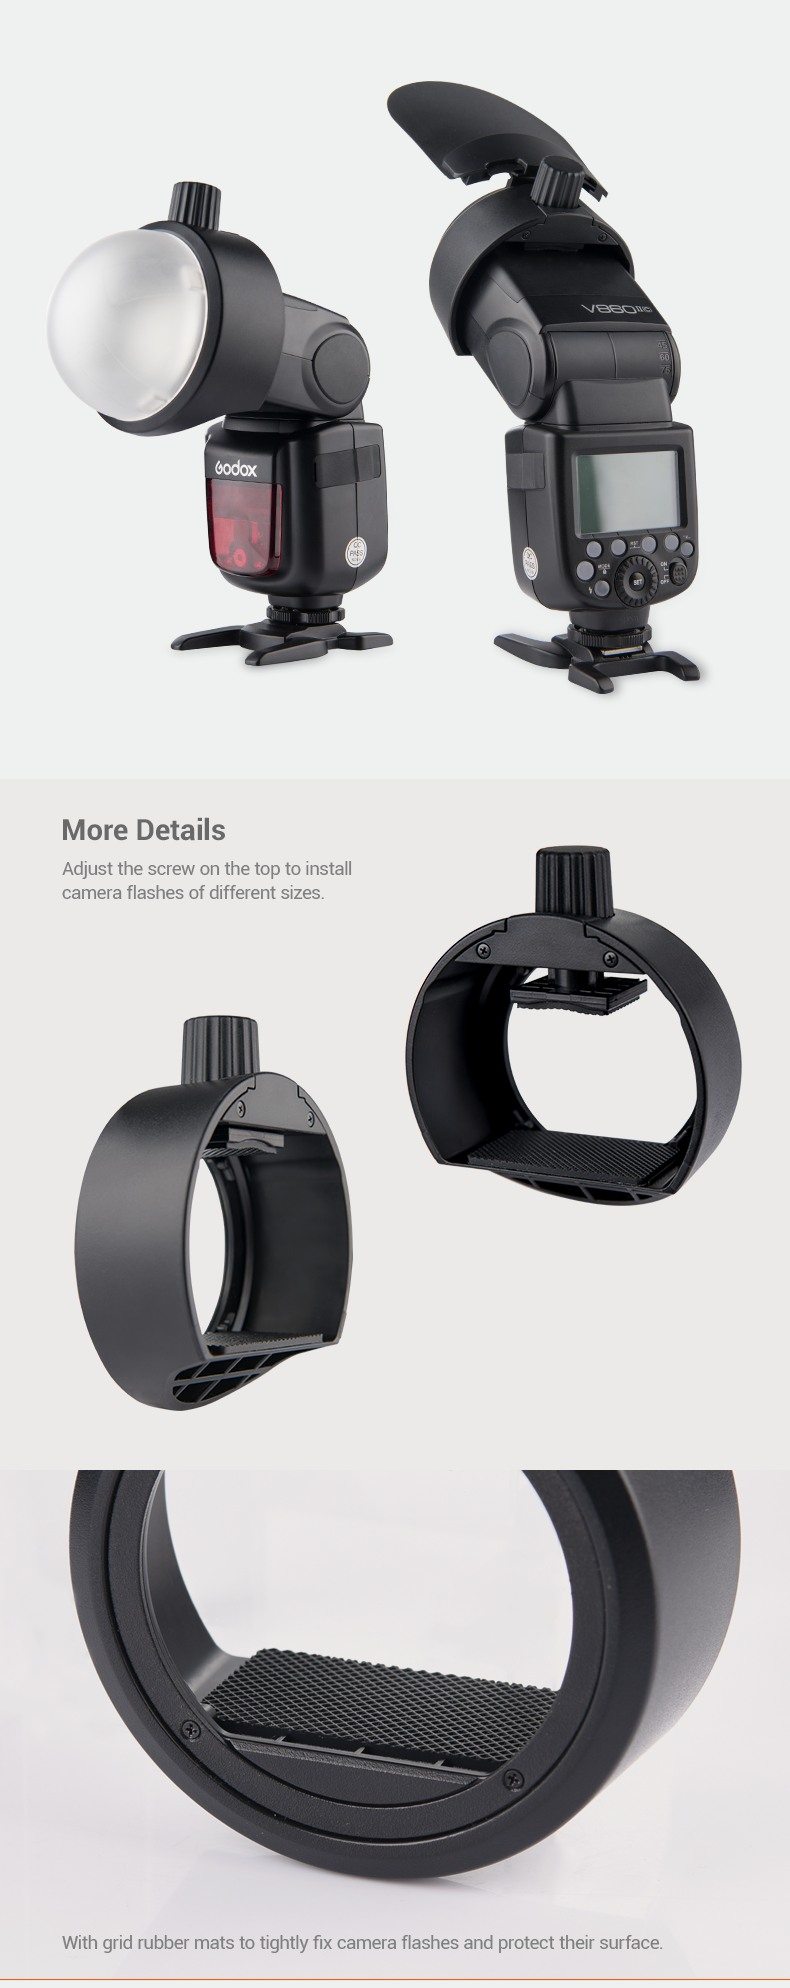 Godox S-R1 Round Head more details and features